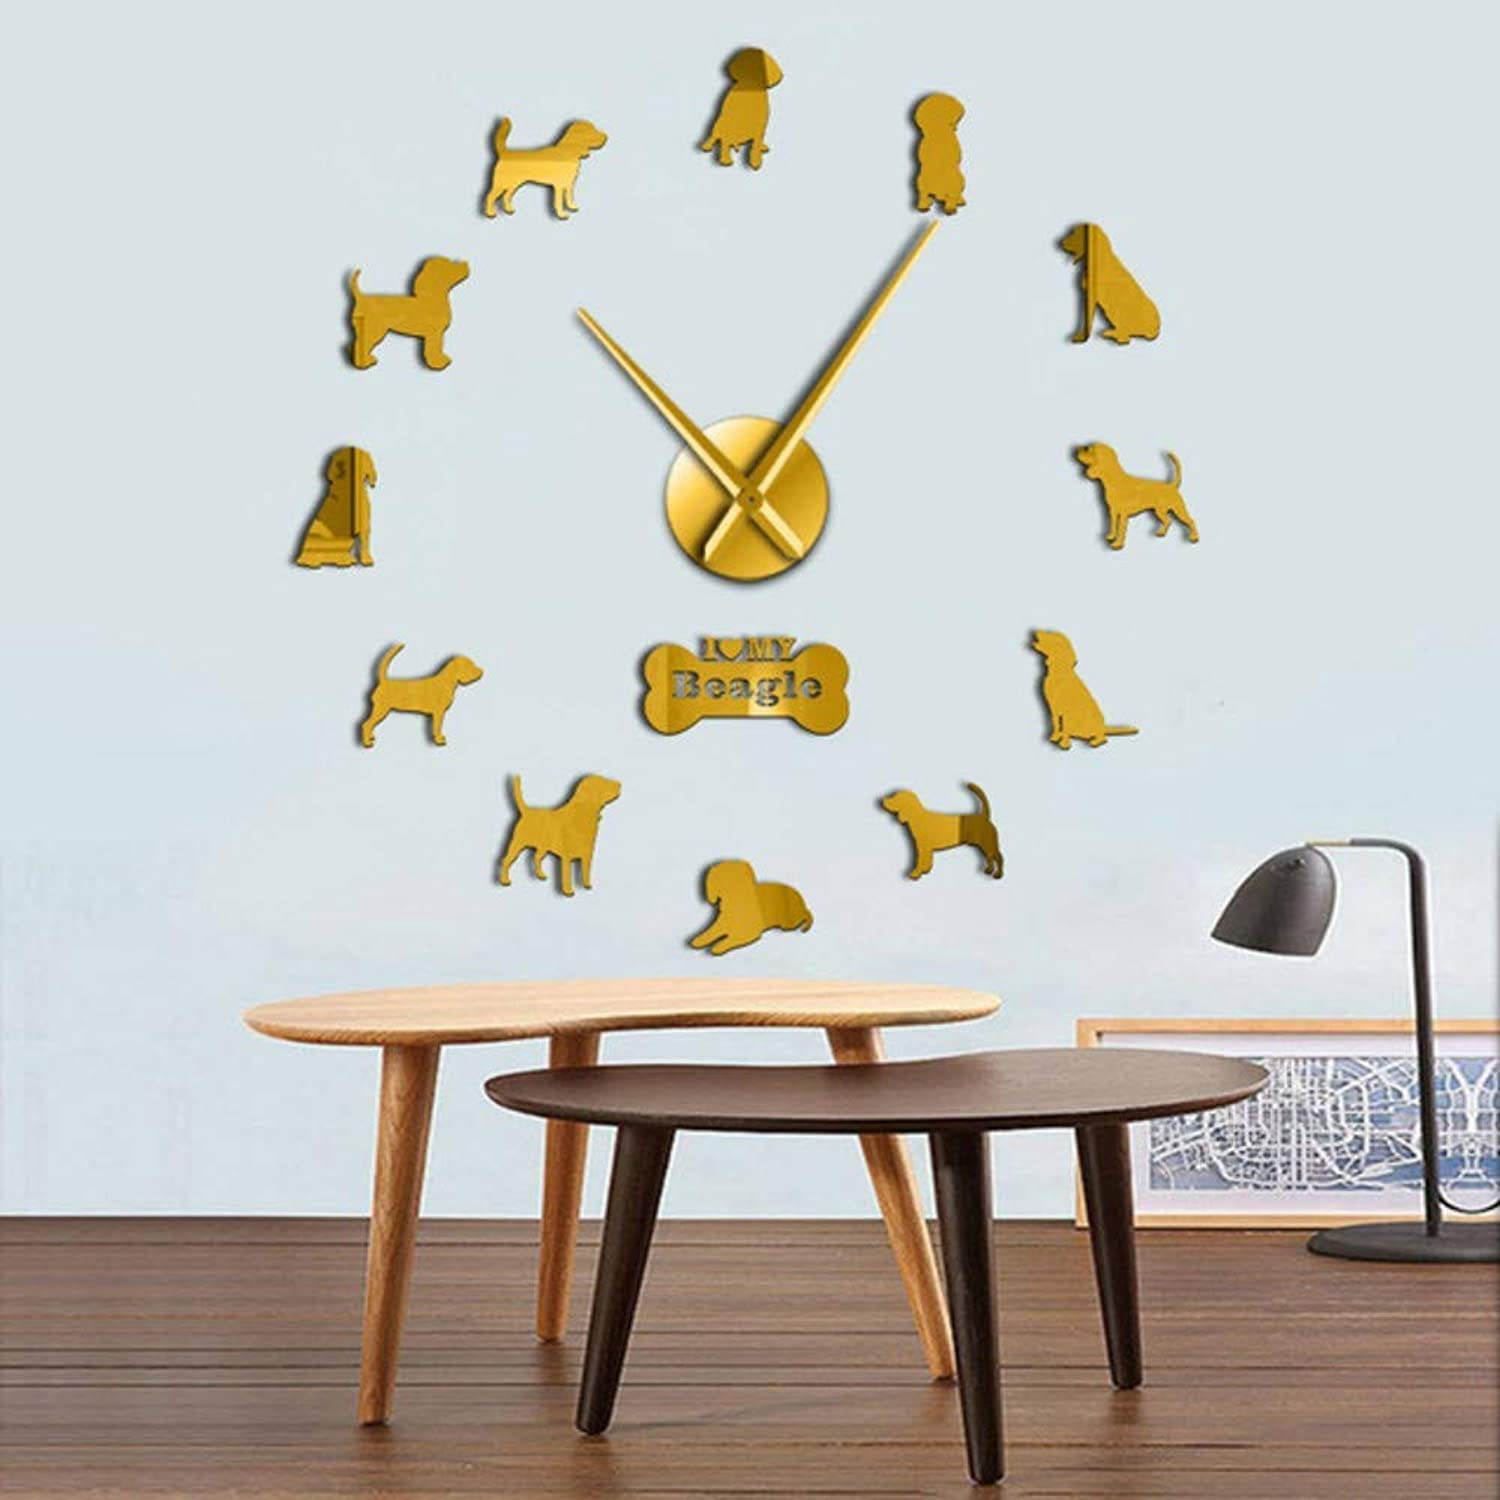 Cchpfcc Adorable Different Dog Breeds Large Wall Art Home Decor Kennel Clubs Wall Clock DIY Giant Living Room Clock Dog Pet Owners Gift